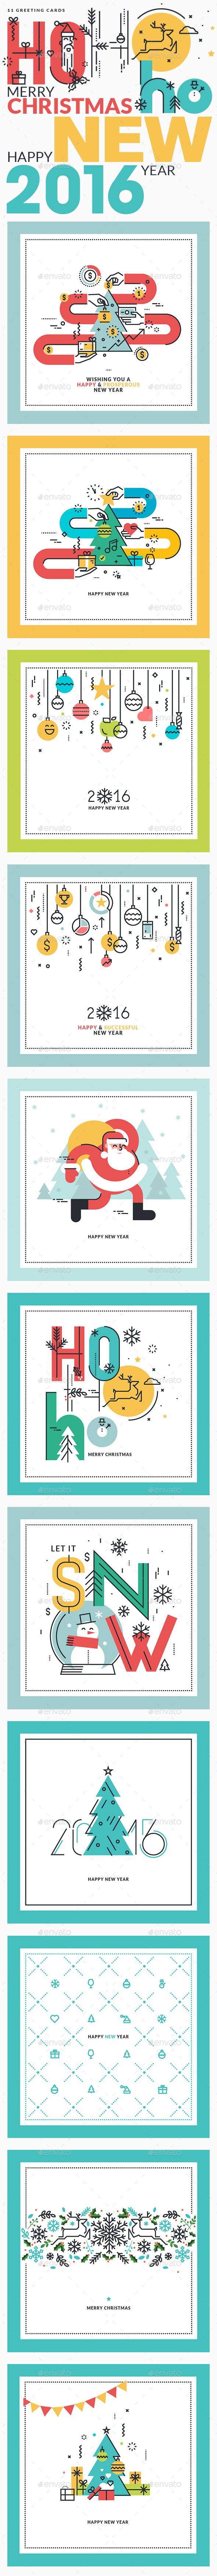 Set of Flat Line Design Christmas and New Year's